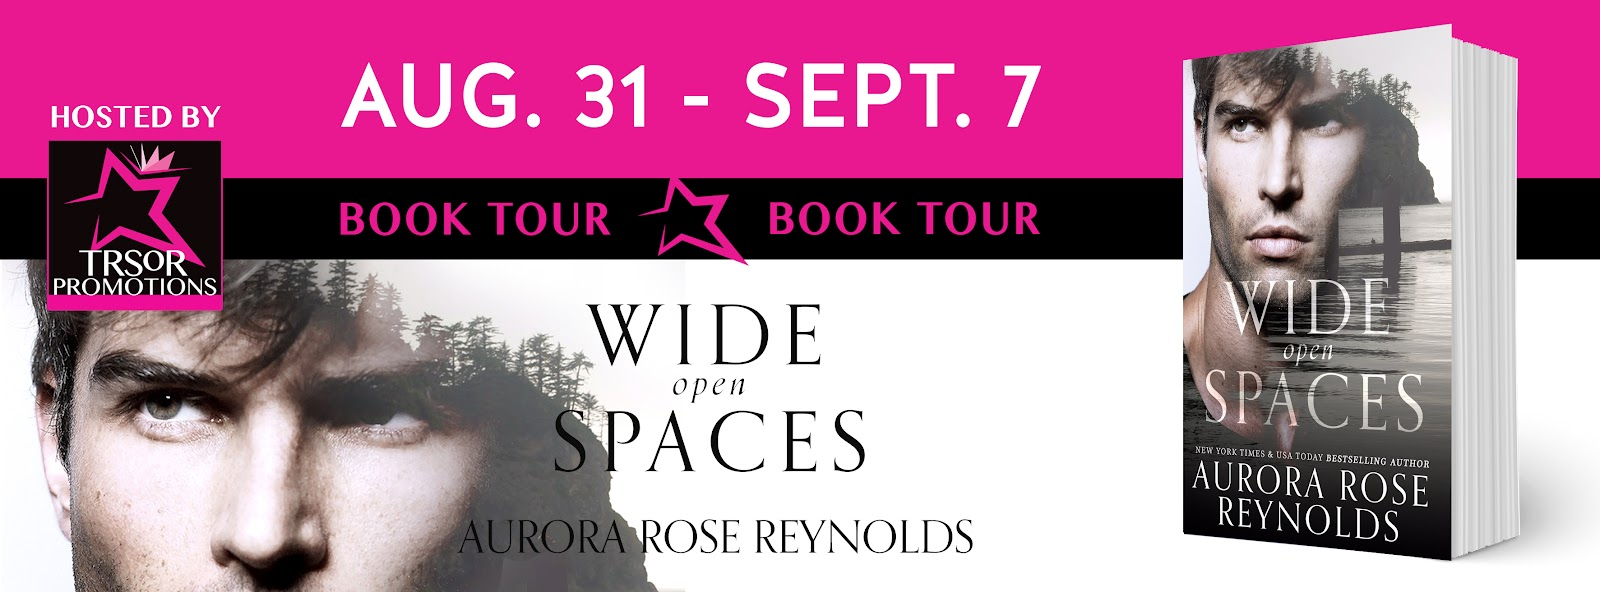 WIDE_OPEN_SPACES_BOOK_TOUR.jpg